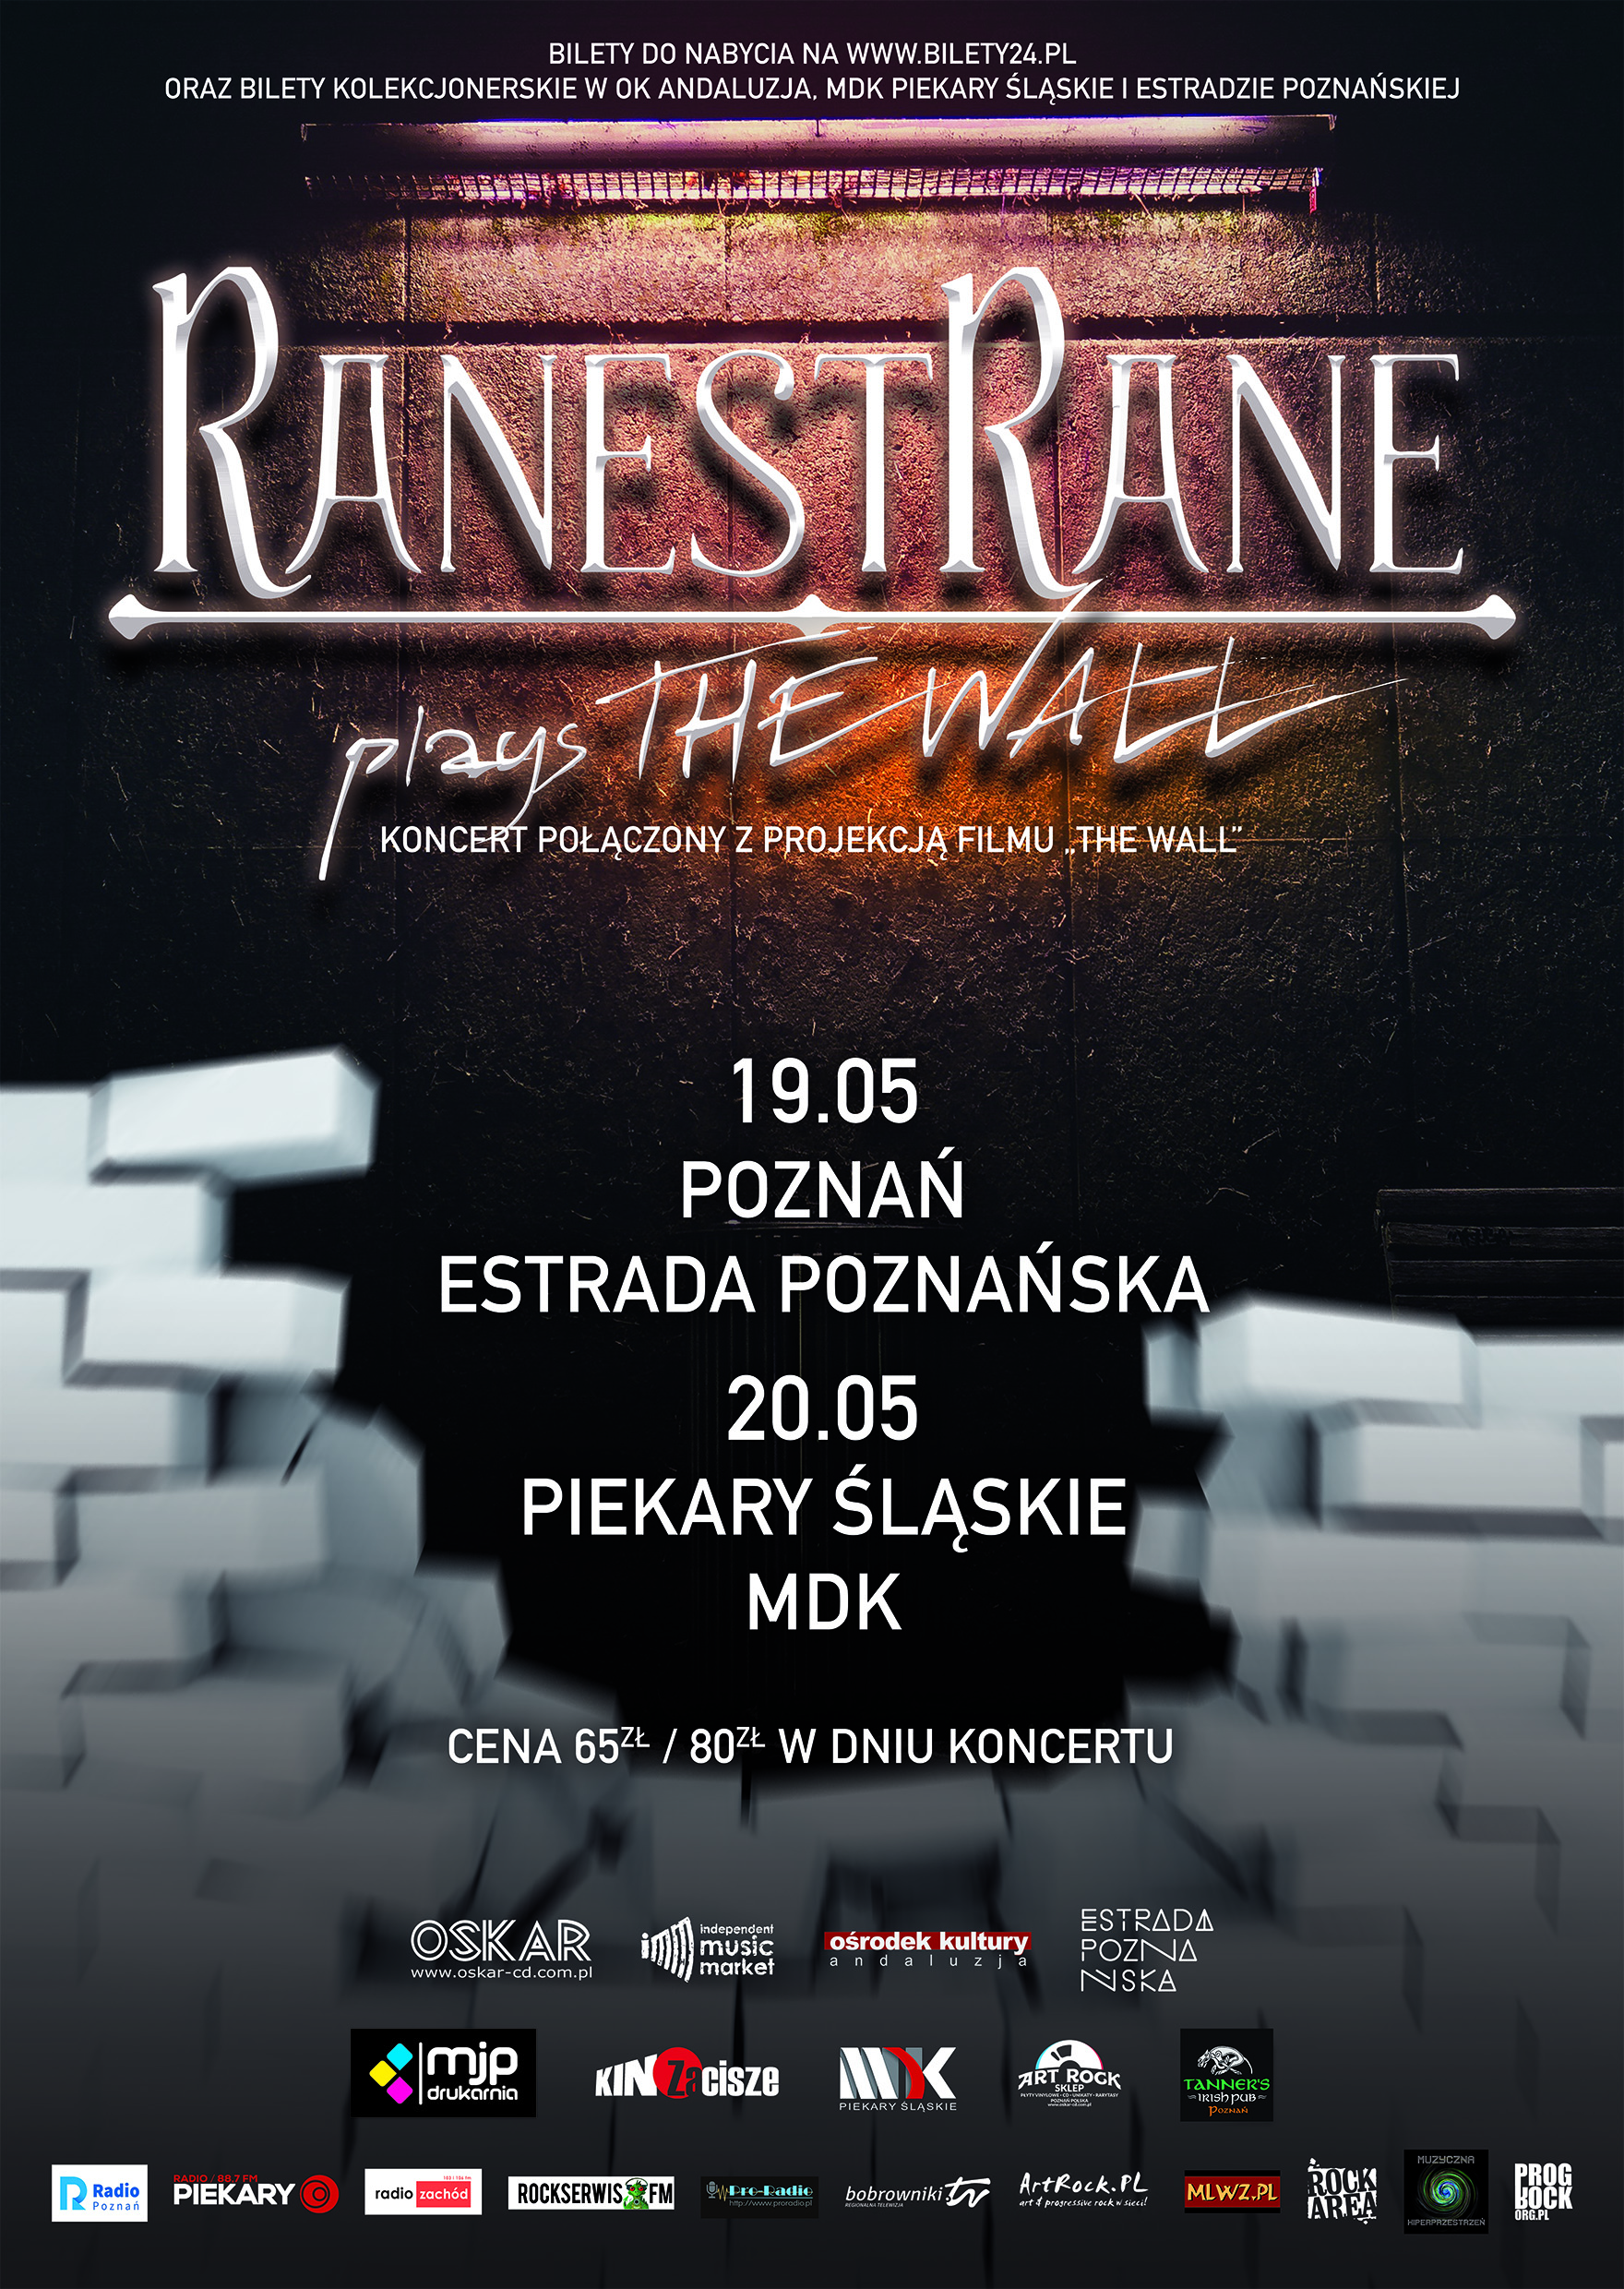 RanestRane plays the Wall